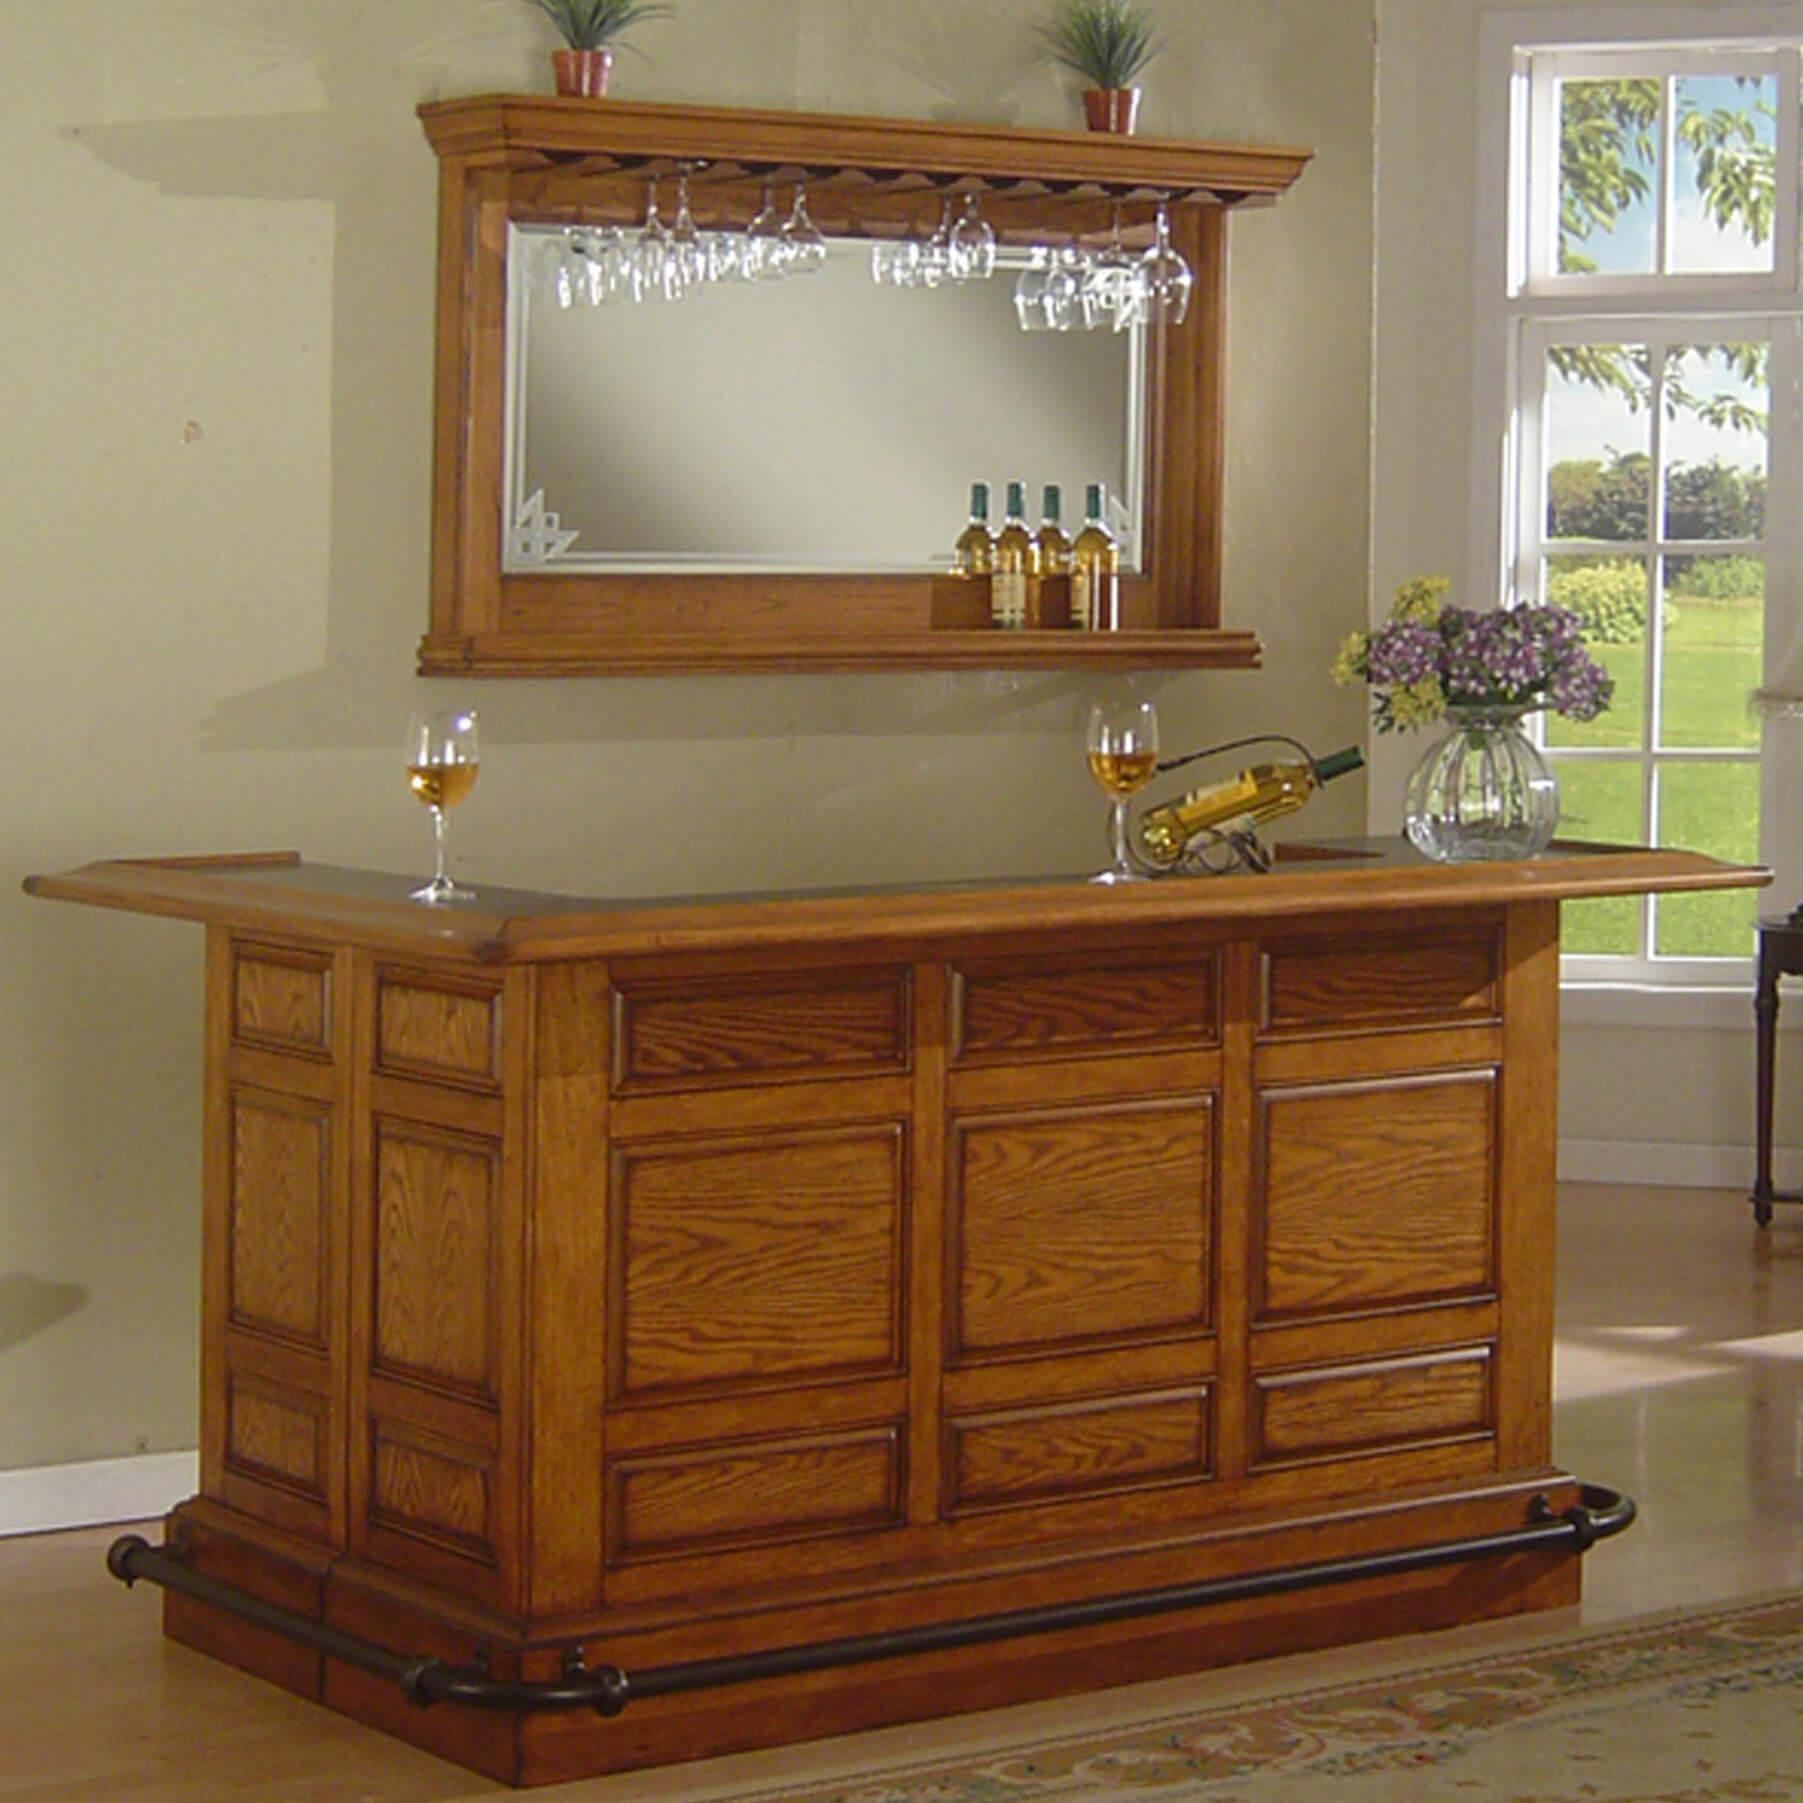 Nice Solid Wood Home Bar With Wrap Around Counter.